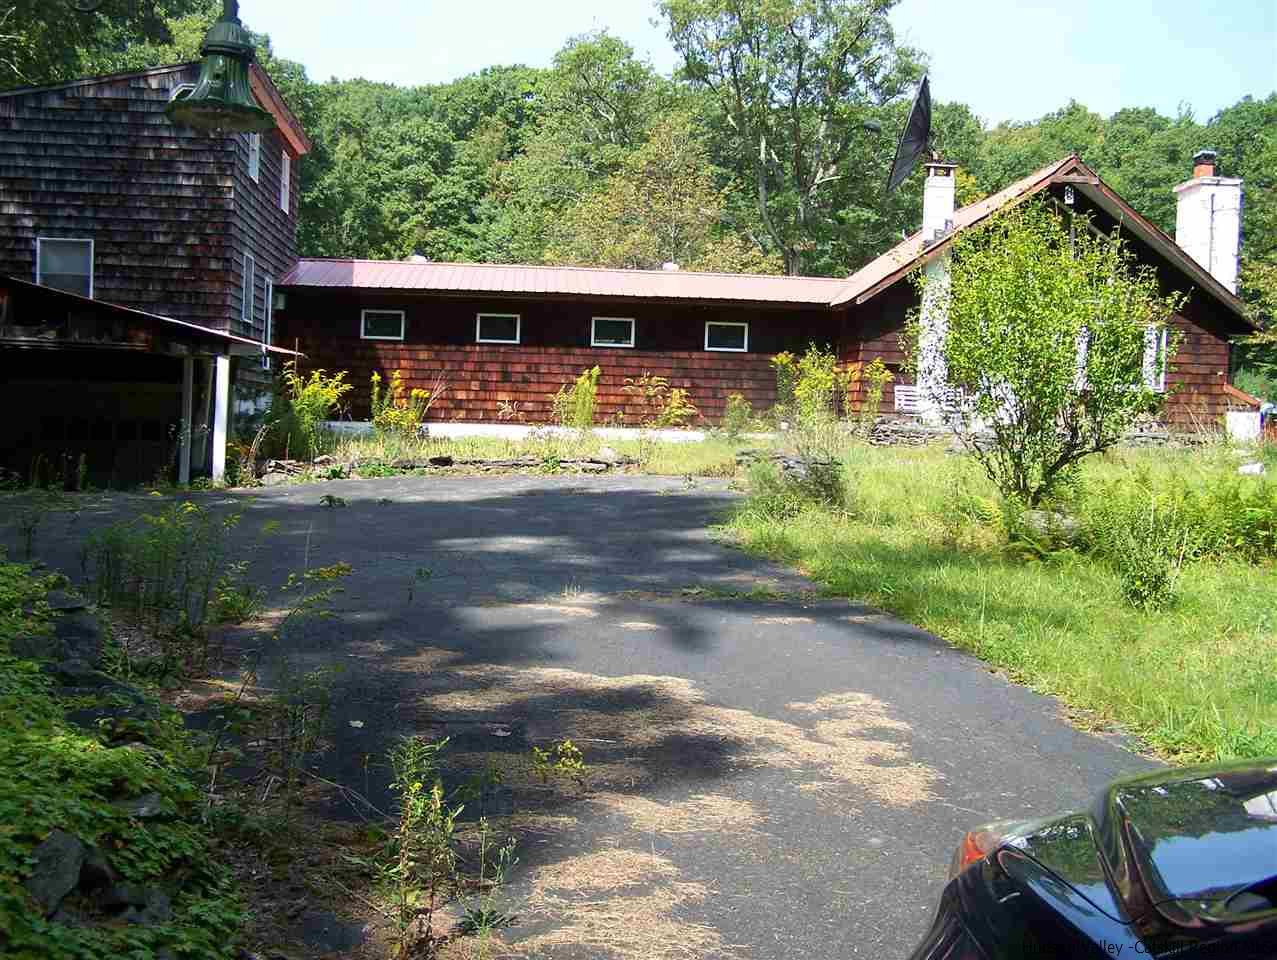 Single Family Home for Sale at 175 SHOLAM ROAD 175 SHOLAM ROAD Napanoch, New York 12458 United States